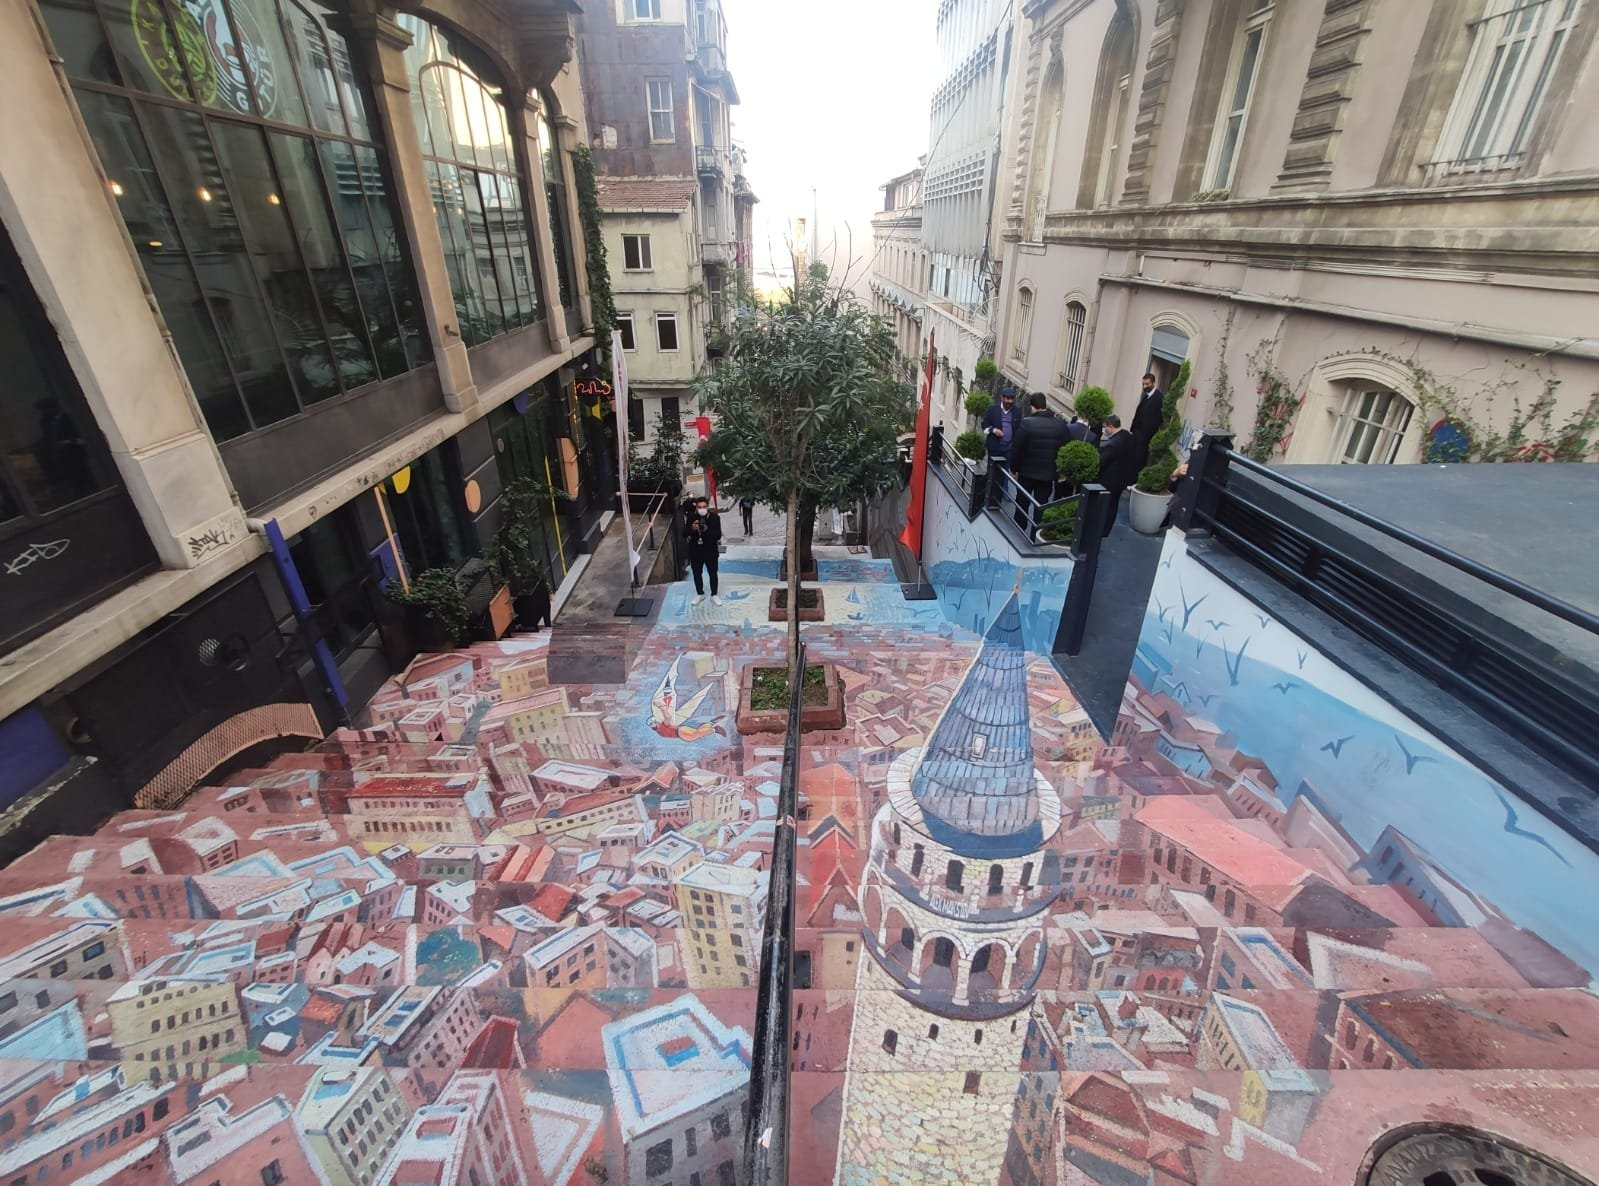 A 3-D mural of the Galata Tower adds a colorful touch to the stairs of Meşrutiyet Street, Istanbul, Turkey, Nov. 12, 2020. (DHA Photo)